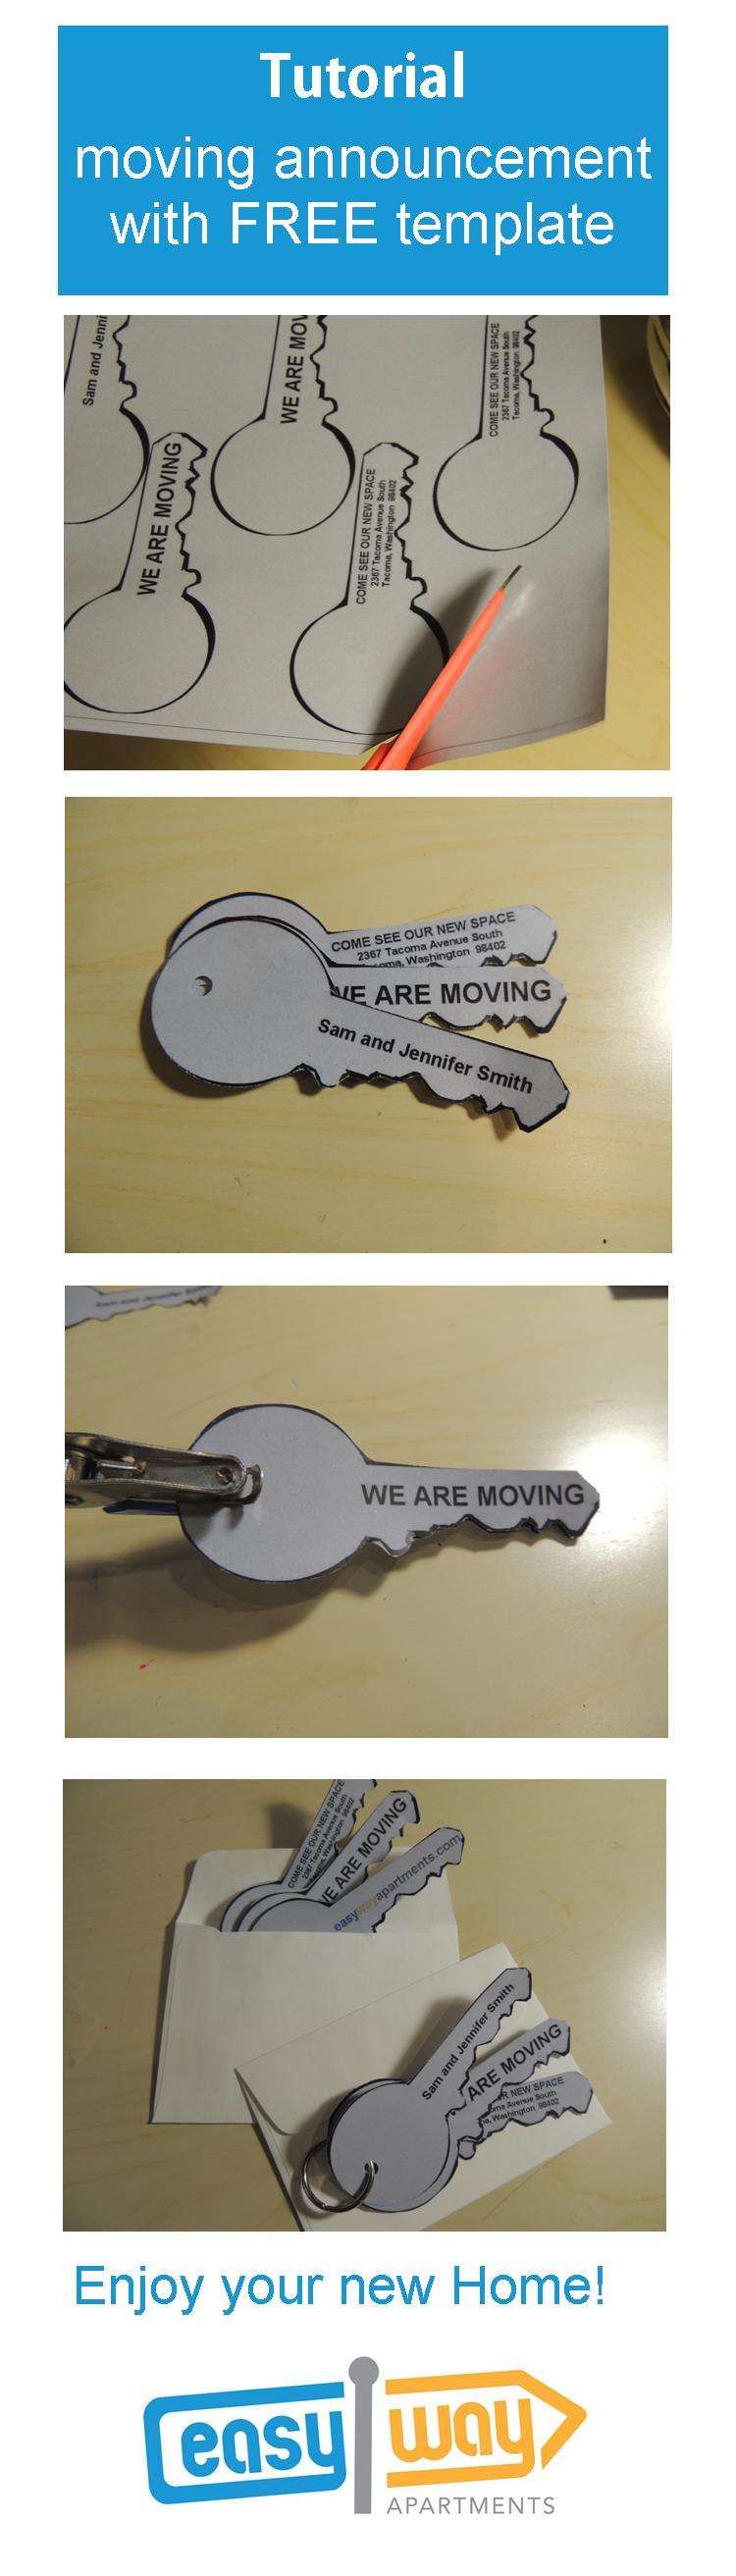 Free Key Chain Moving Announcement |Printable andTutorial